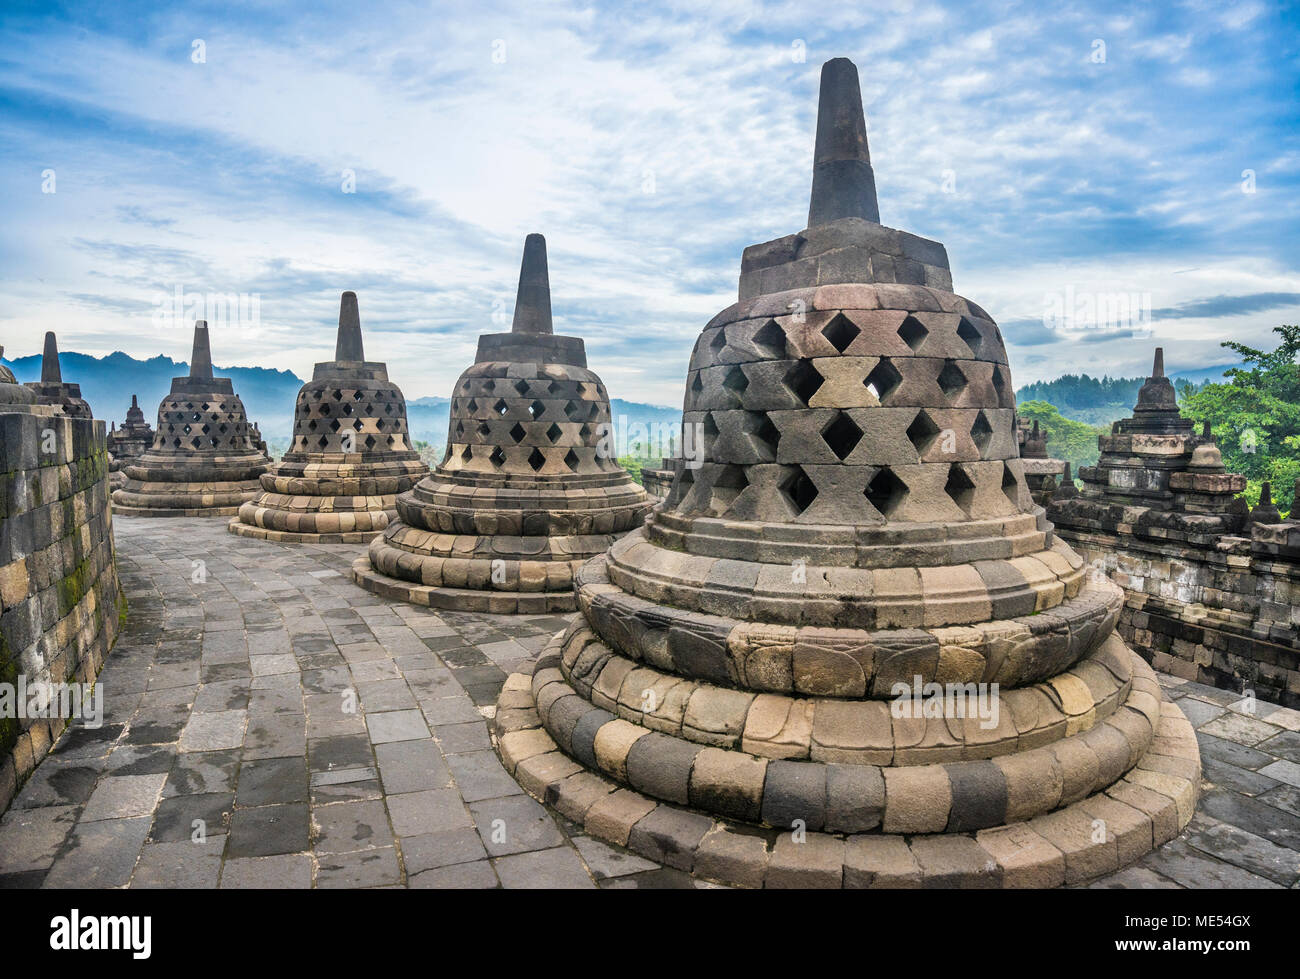 perforated stupas containing Buddha statues on the circular top terraces of 9th century Borobudur Buddhist temple, Central Java, Indonesia - Stock Image